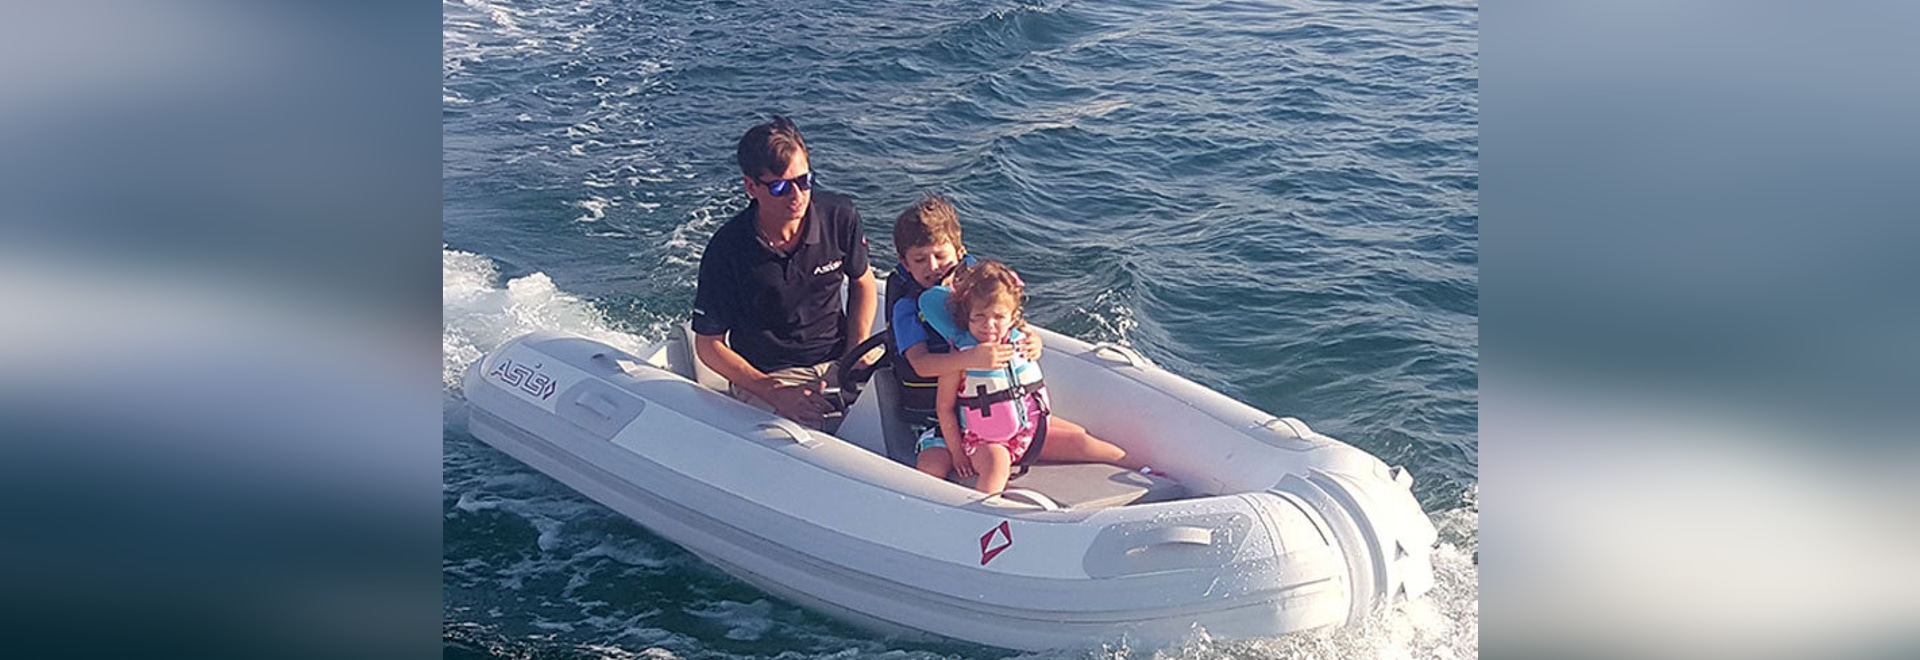 Electric Jet Tender Boats